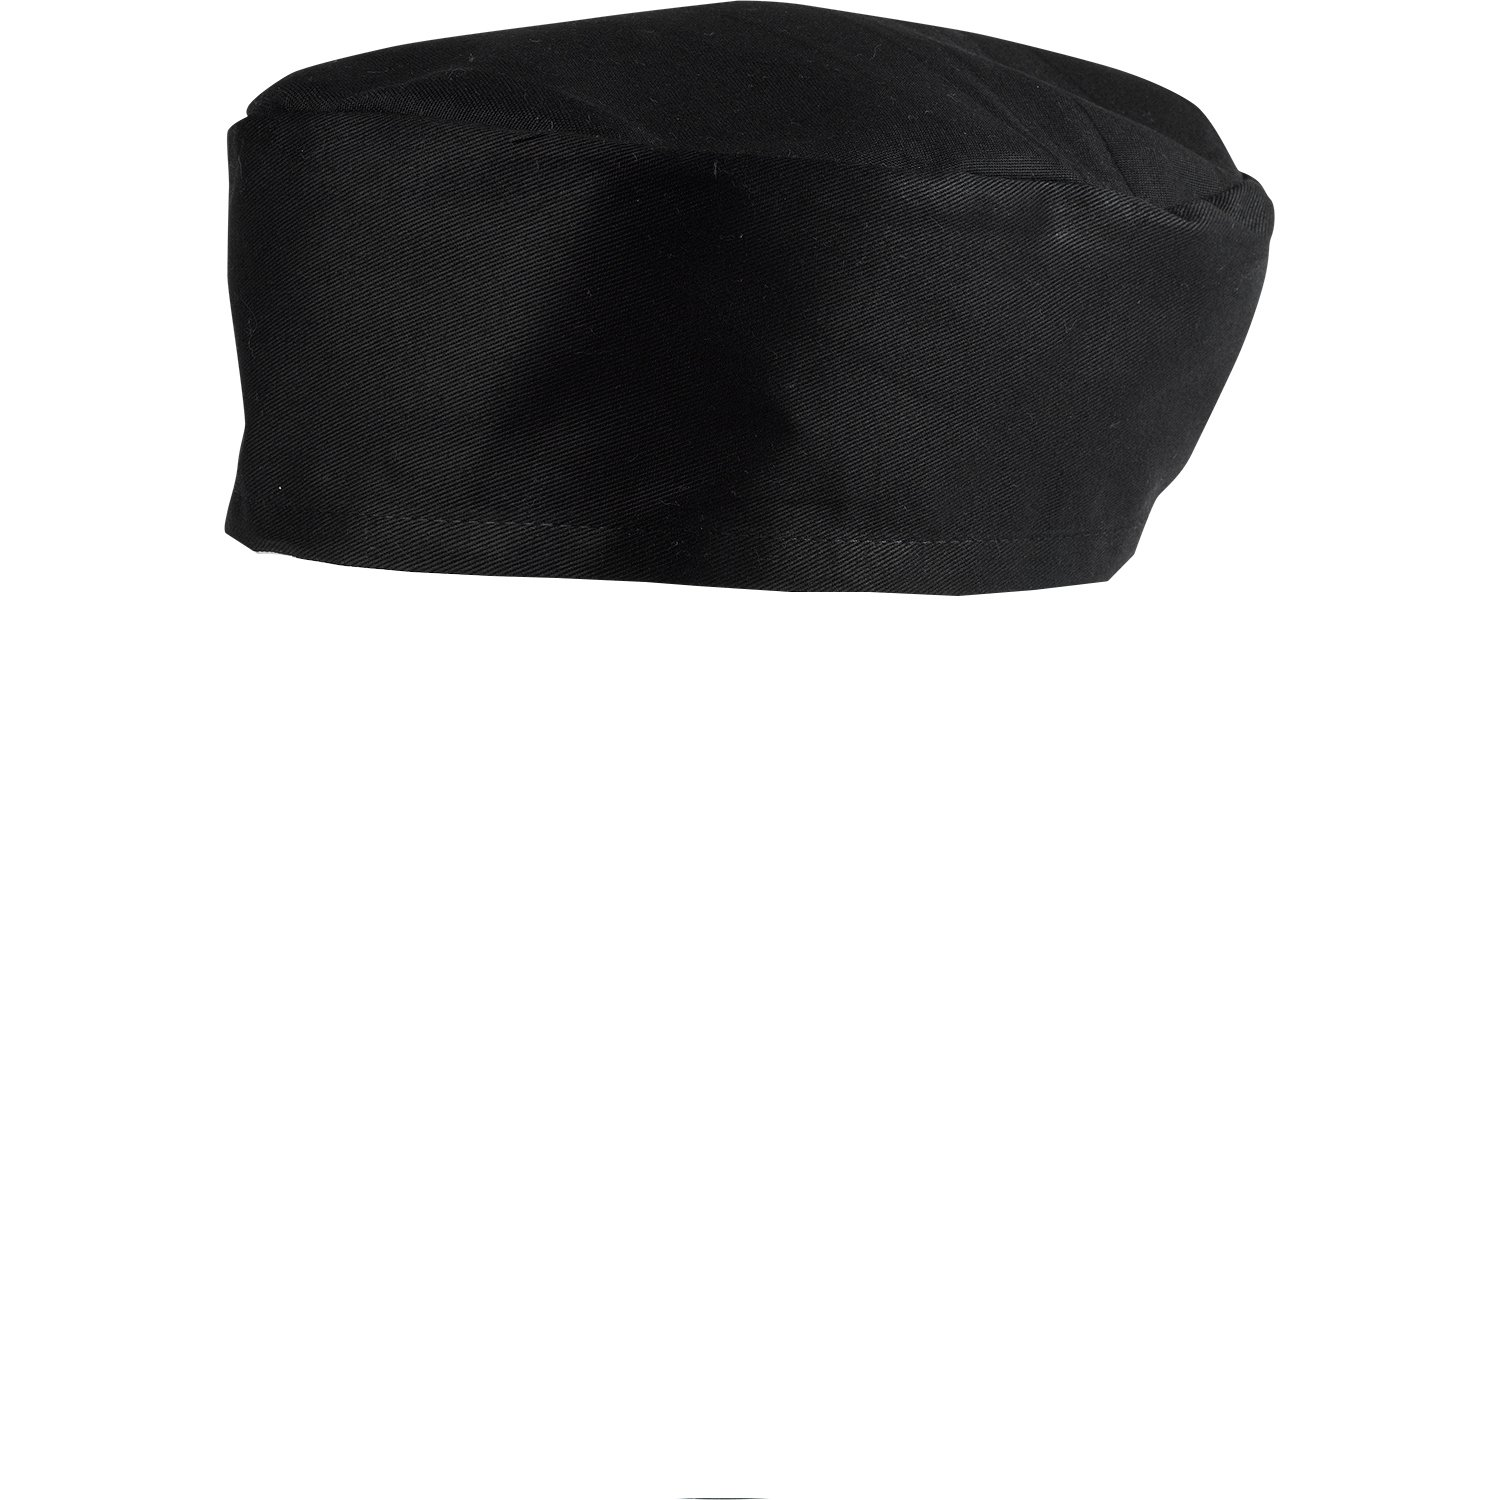 254e3d82a44 Professional Chefs Skull Caps Kitchen Catering Polycotton Hats - One Size ( Black White or Checked)  Amazon.co.uk  Clothing